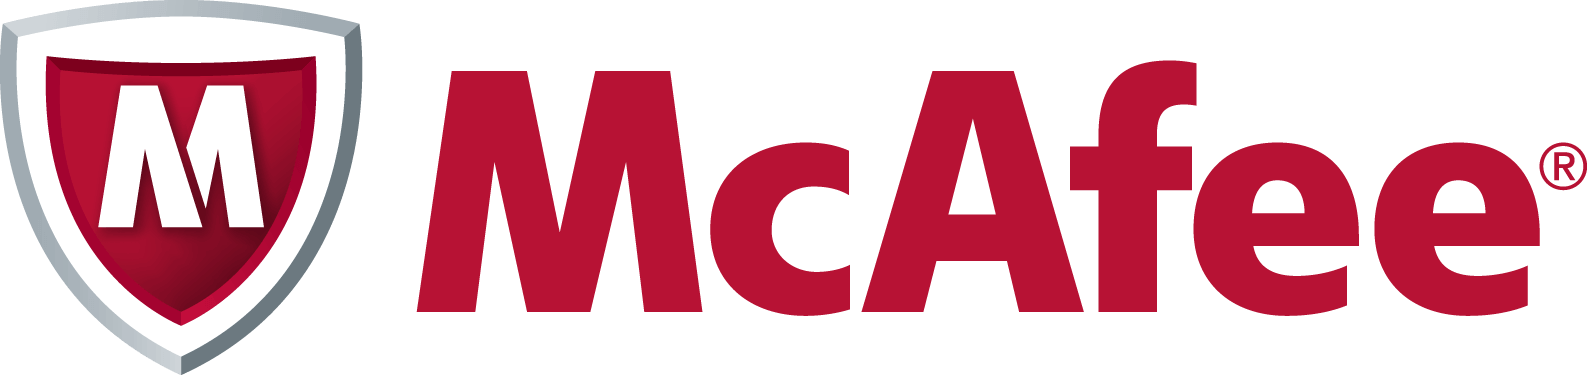 McAfee coupon code Australia & New Zealand